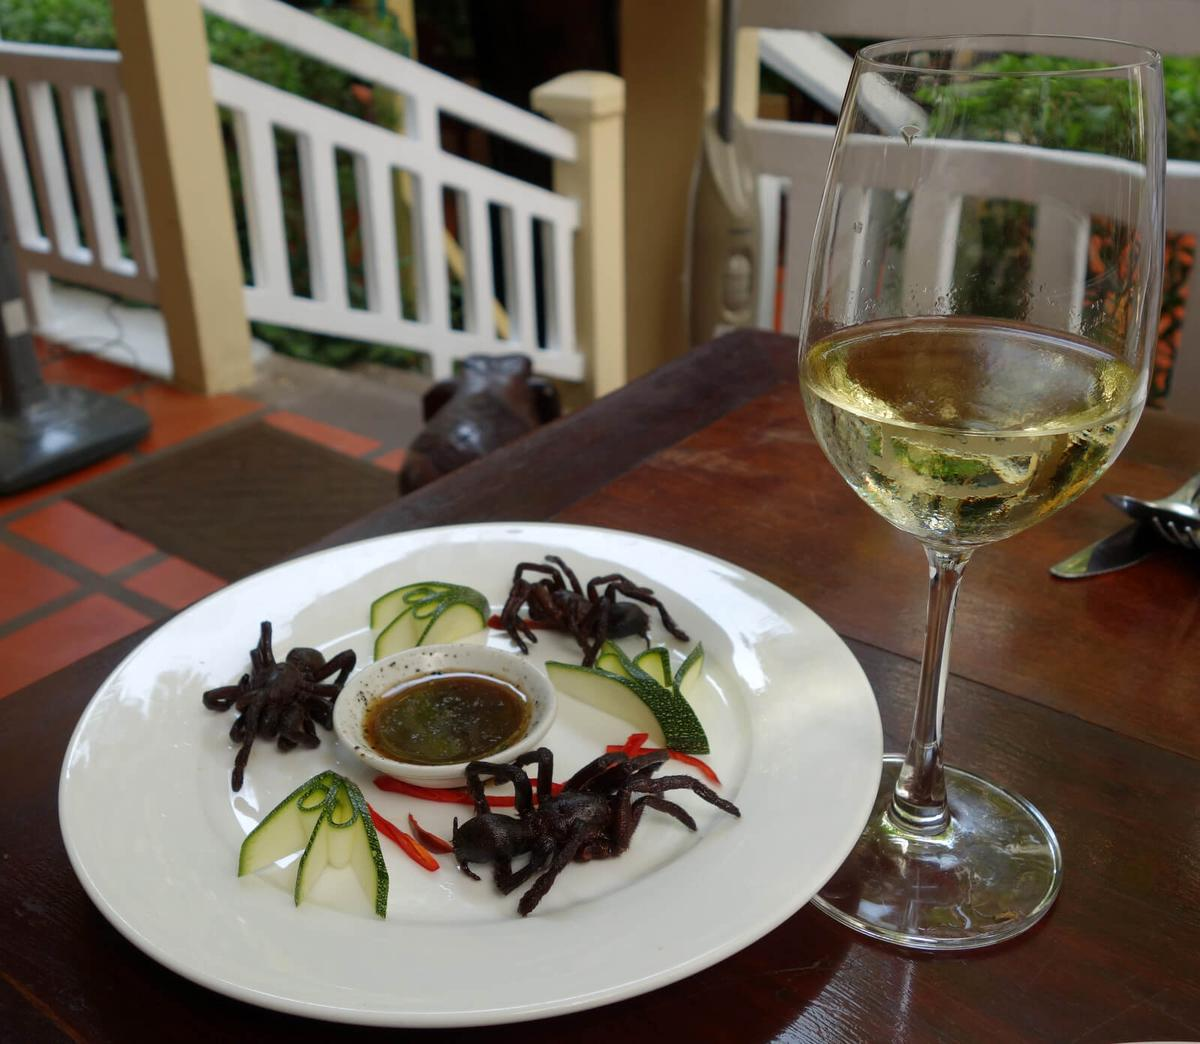 Eating Tarantulas in Cambodia: The Good, The Bad & The Eight-Legged